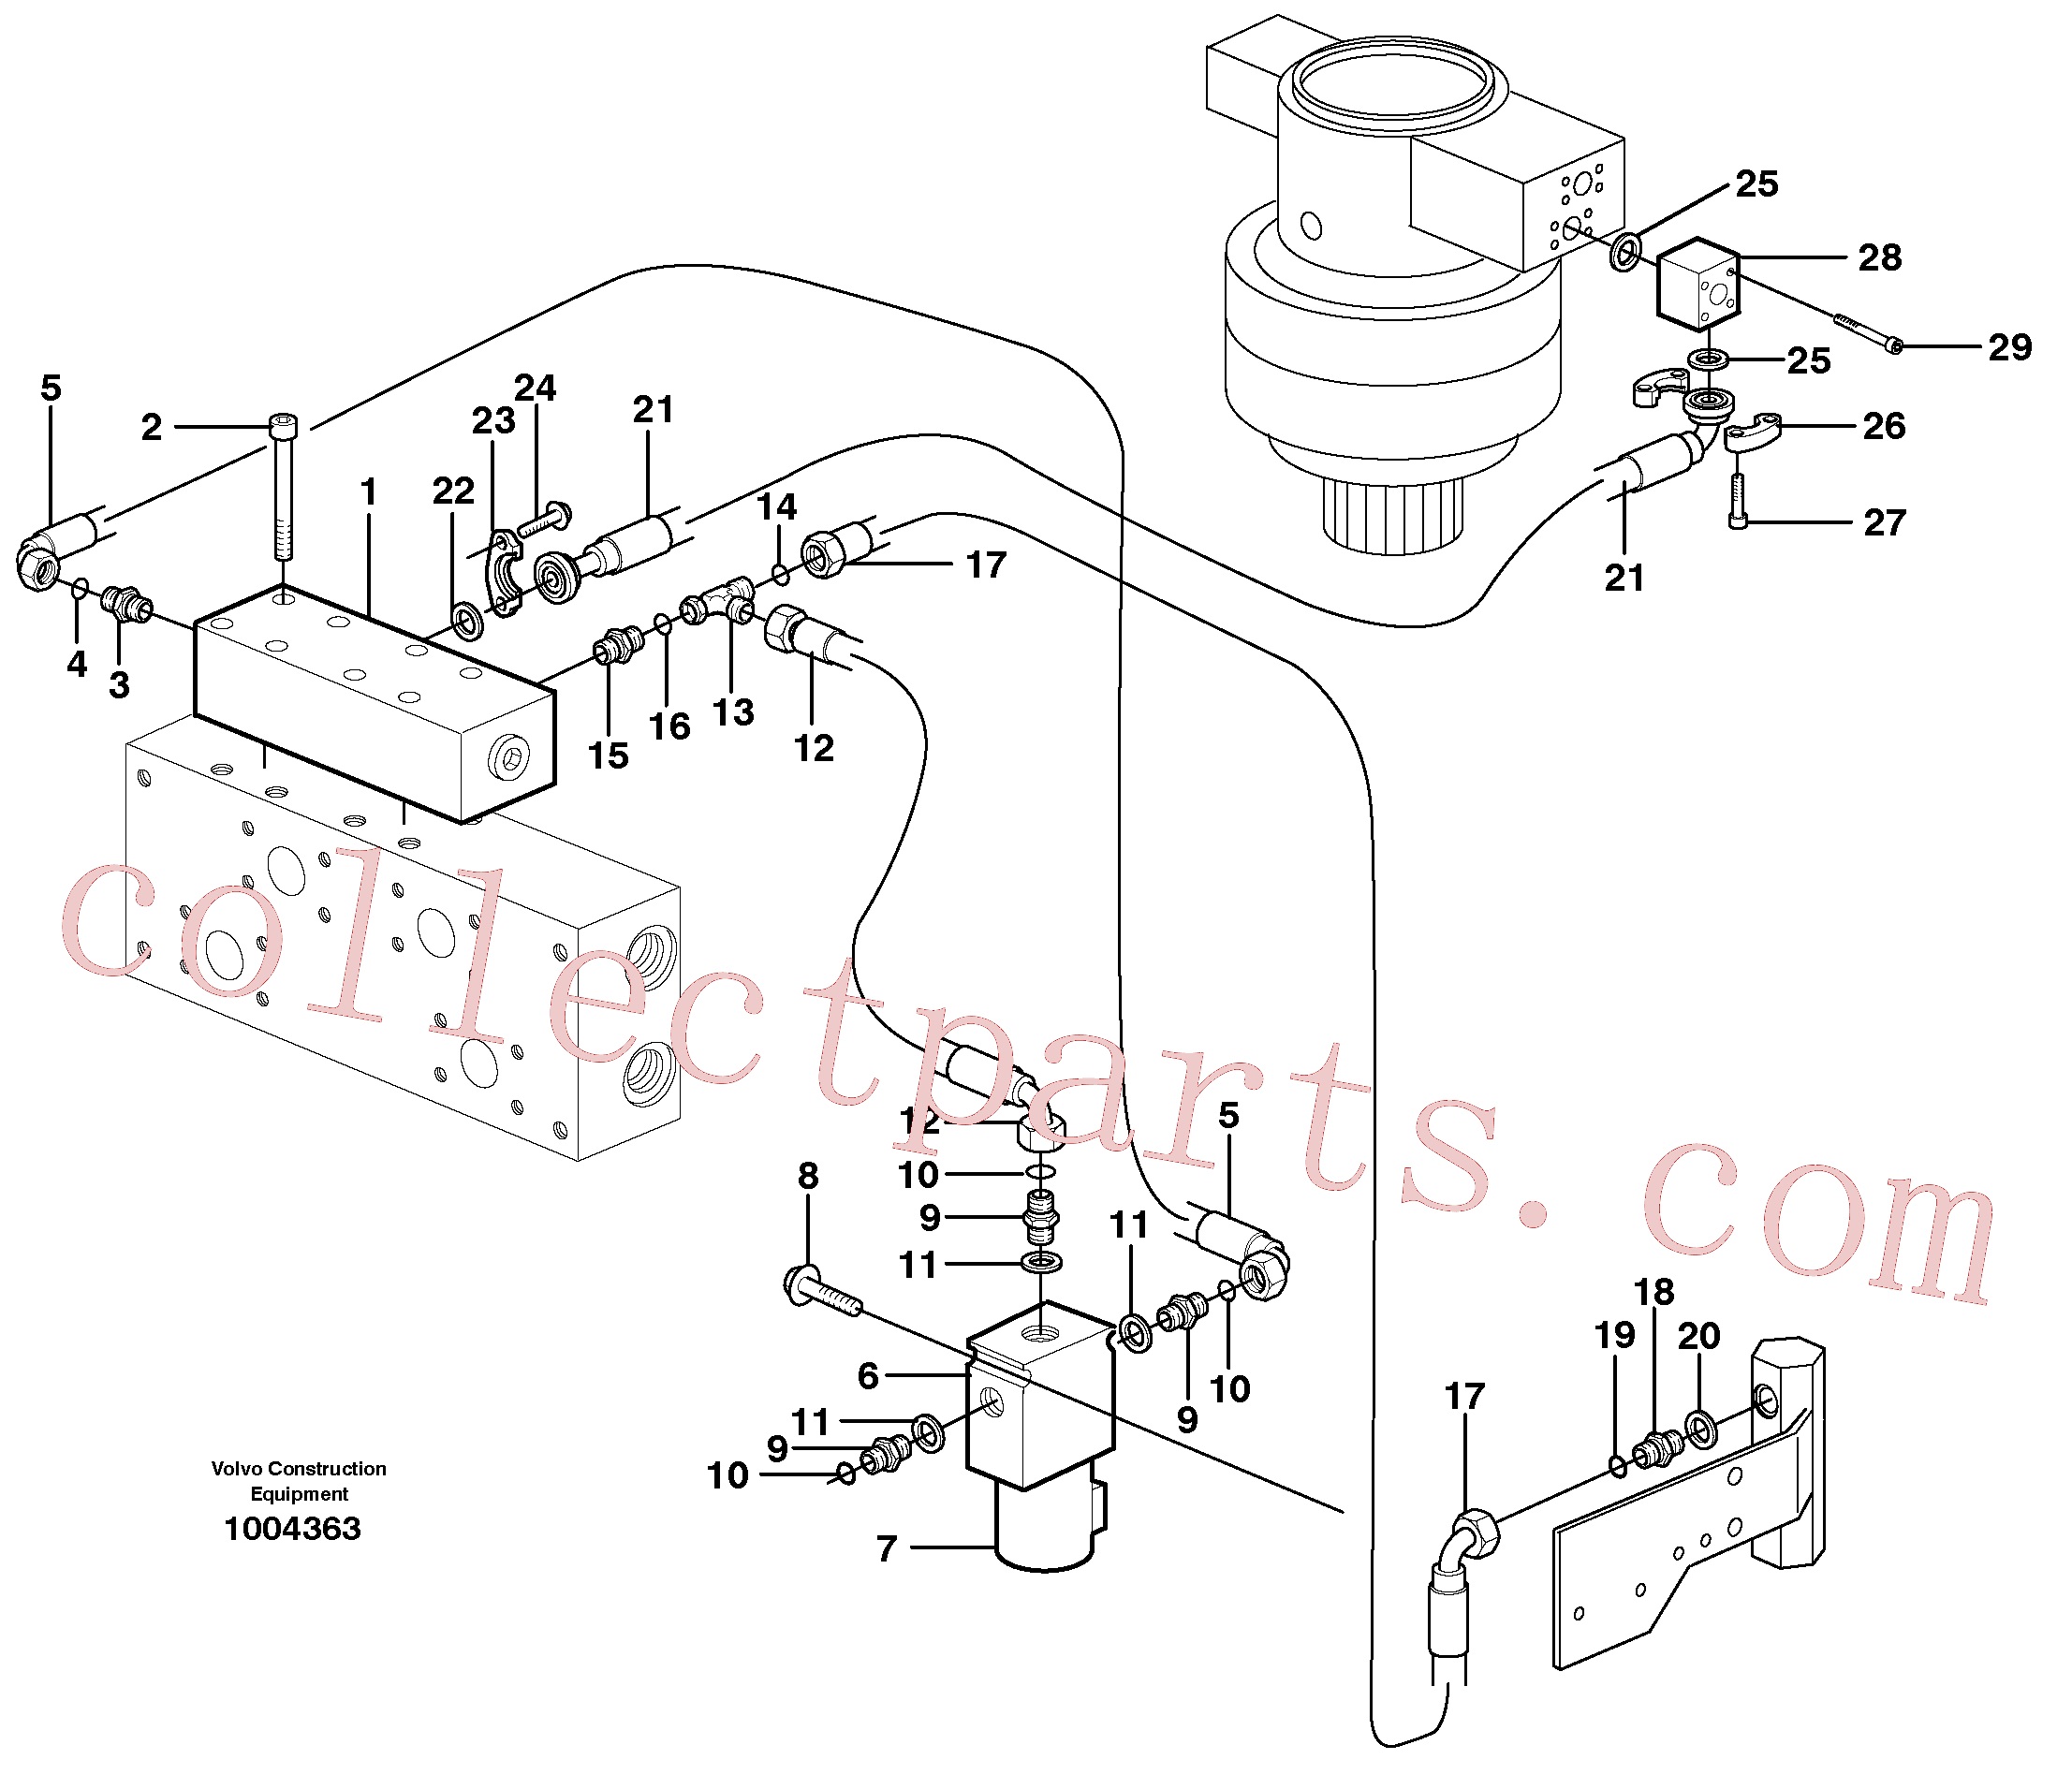 VOE14346520 for Volvo Hydraulic system, Float position valve(1004363 assembly)